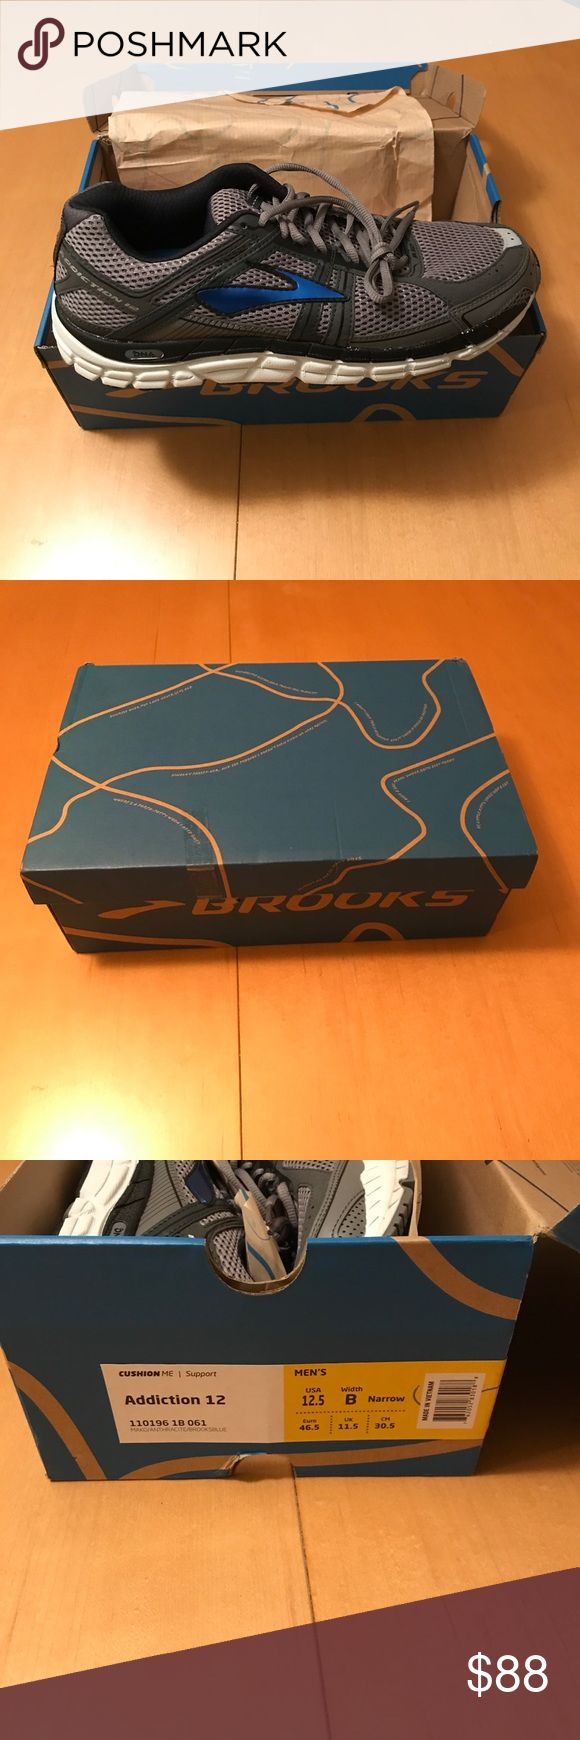 Men's Size 12.5 Addiction 12 Brooks Running Shoes Size 12.5 B Width (Narrow) brooks running shoes. Brand new in box, NWT Brooks Shoes Athletic Shoes